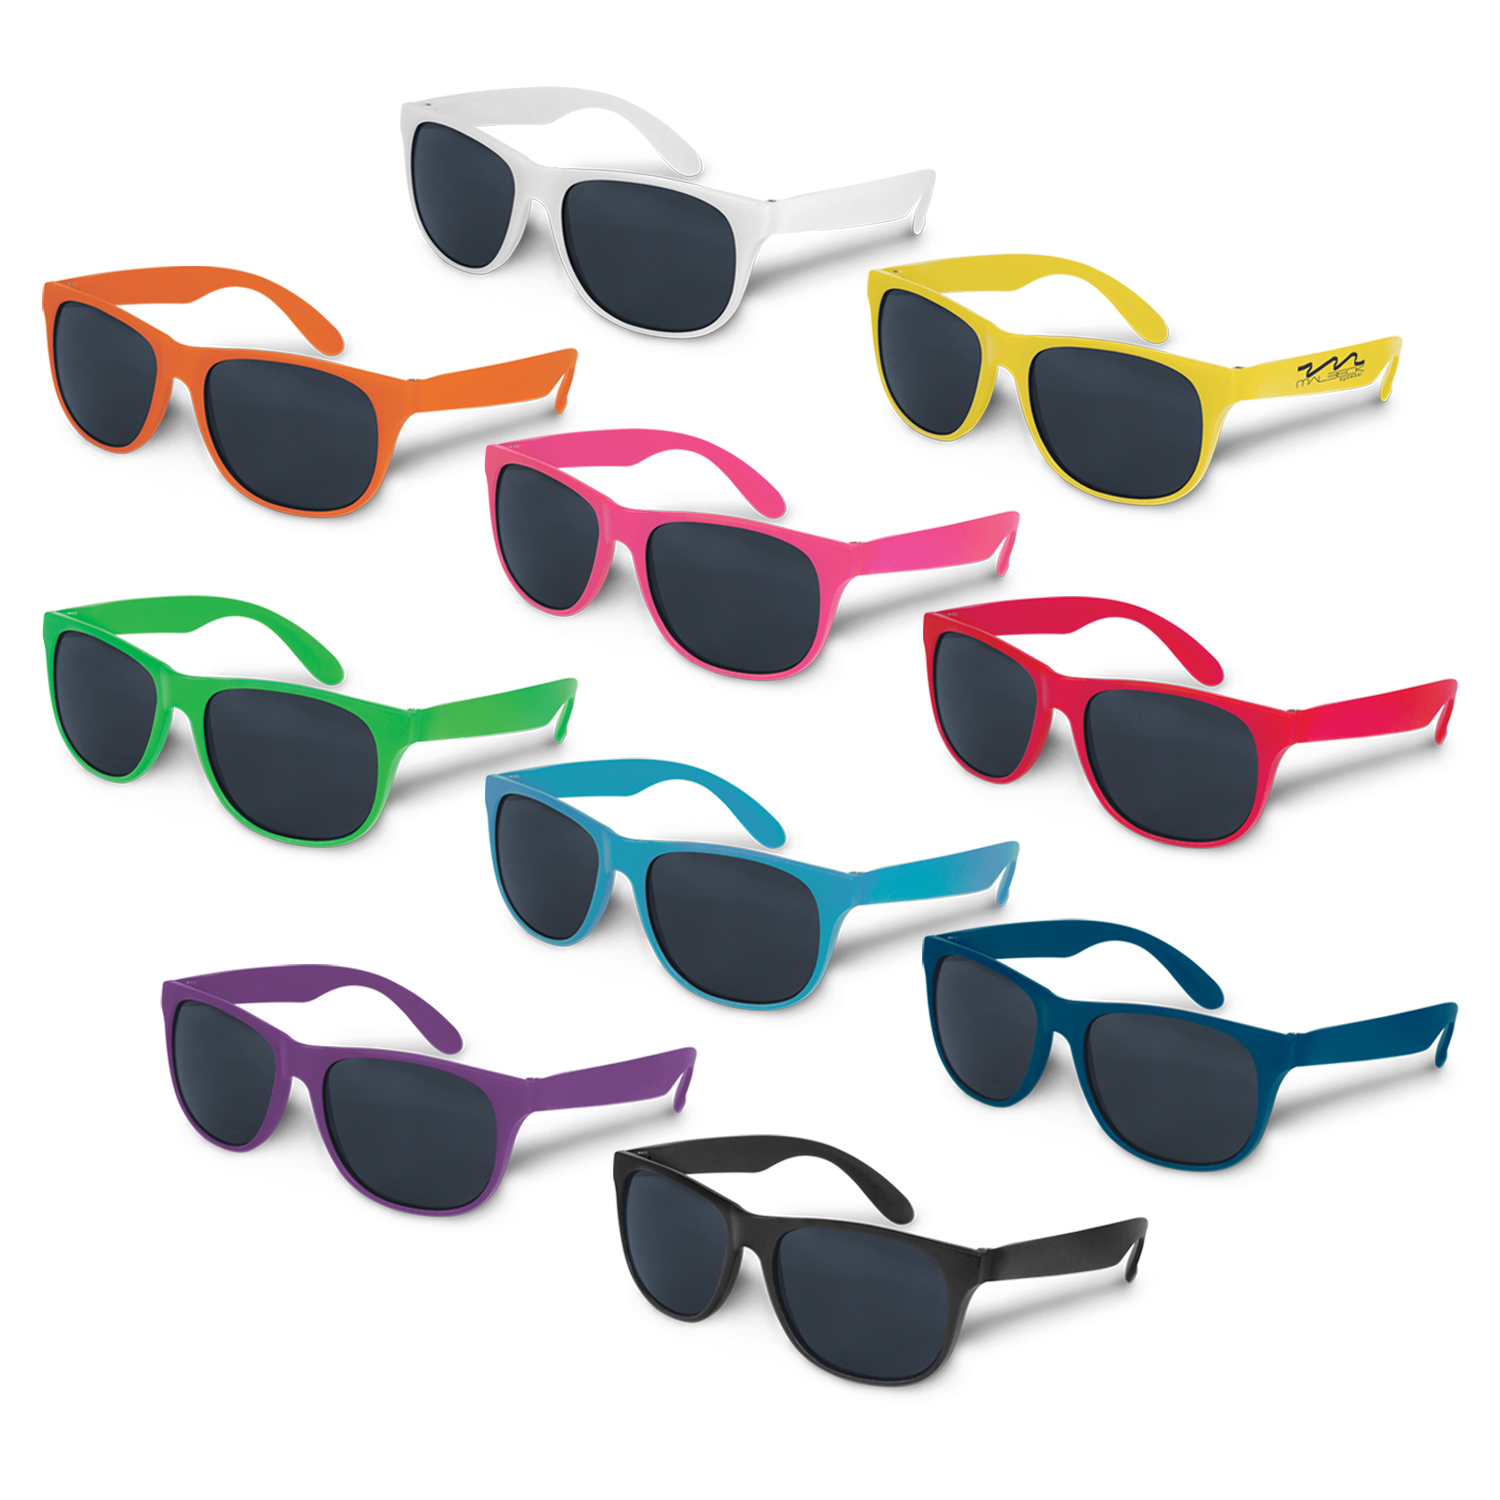 108389-0 malibu sunglasses